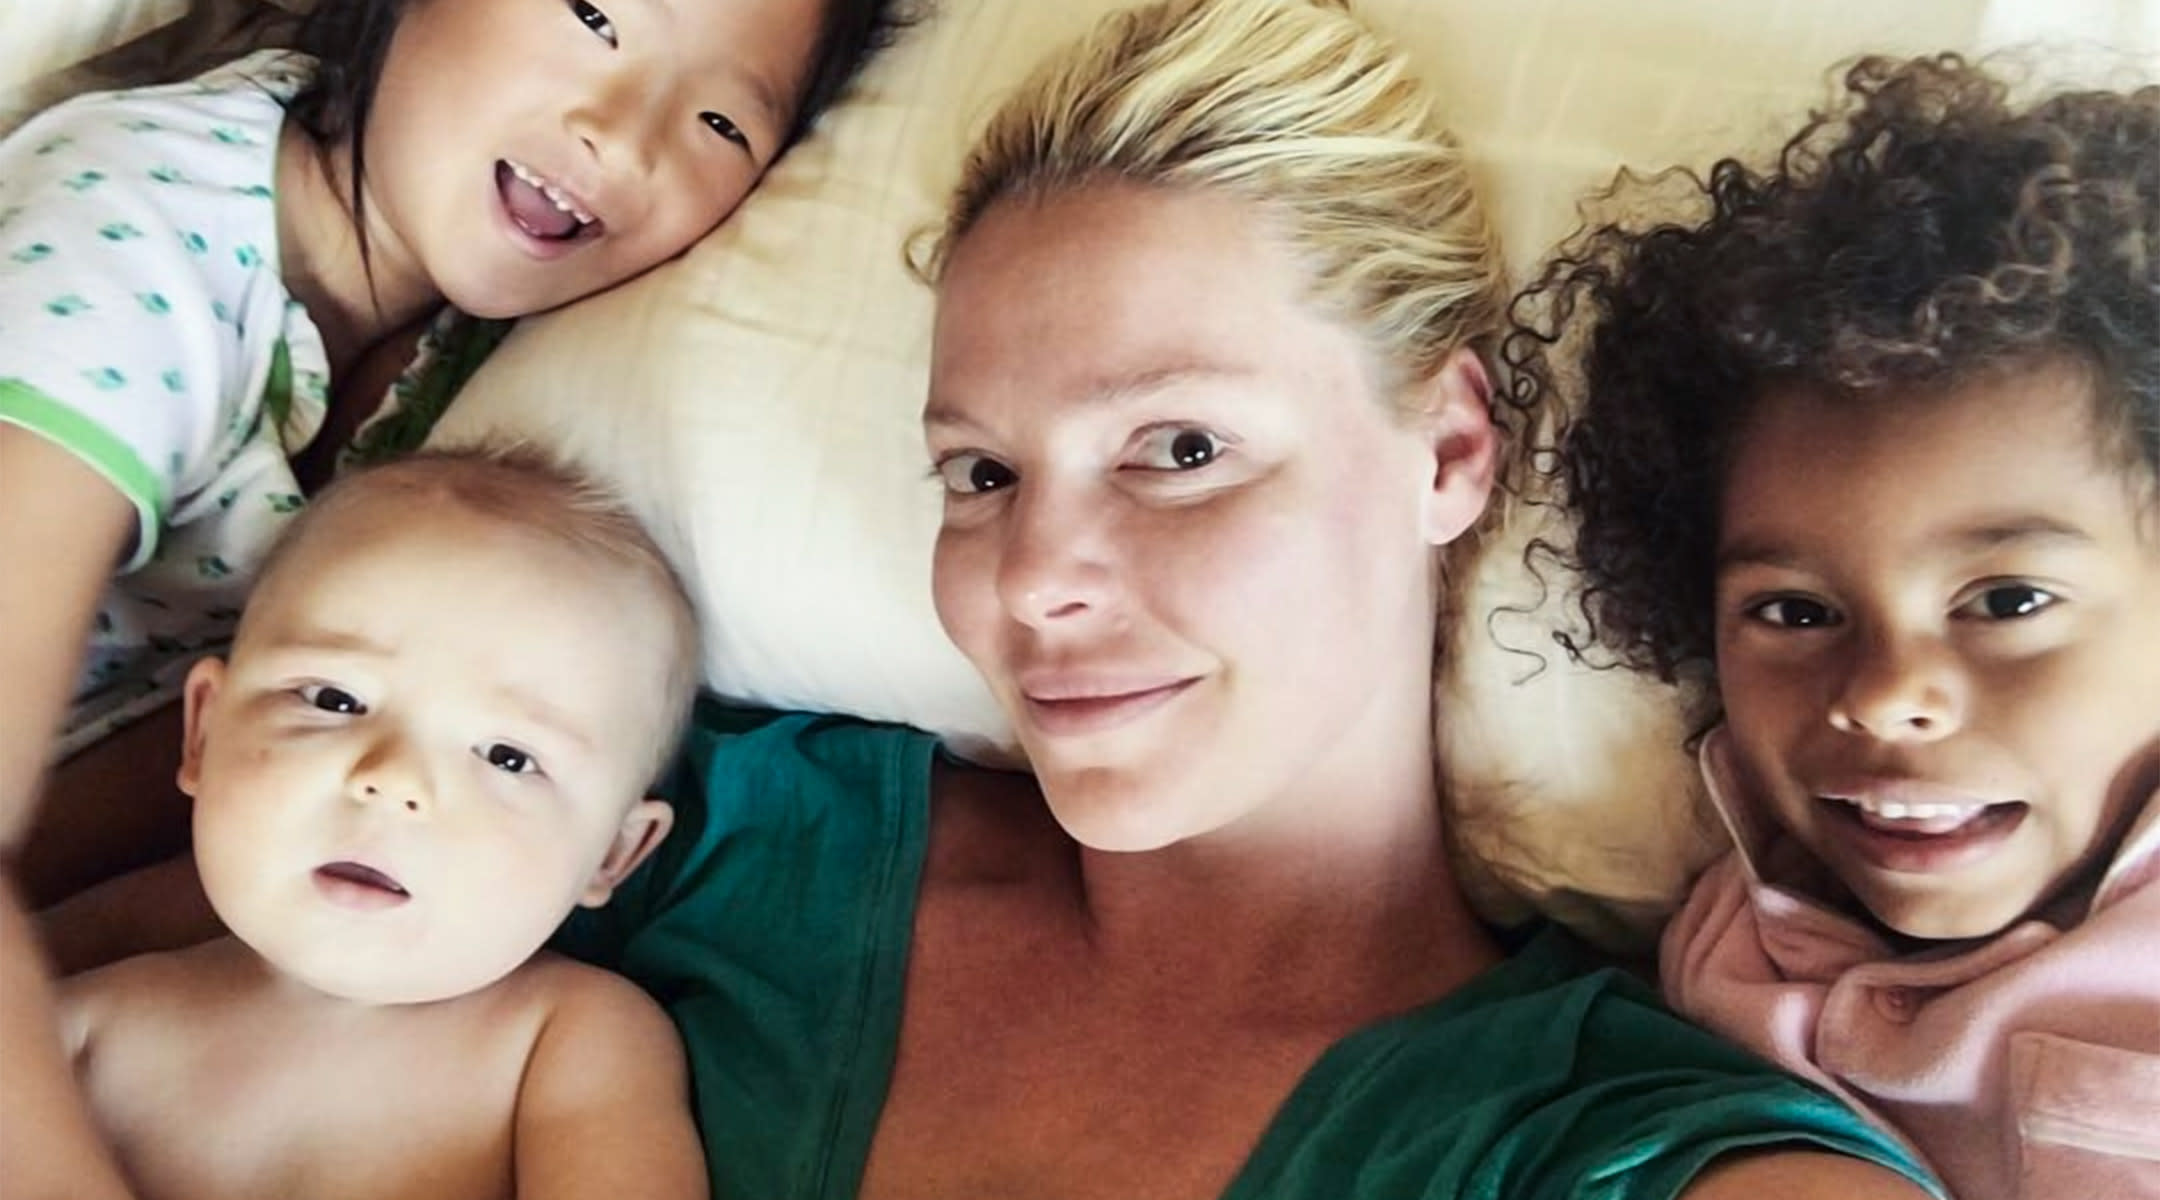 katherine heigl at home in bed with her kids